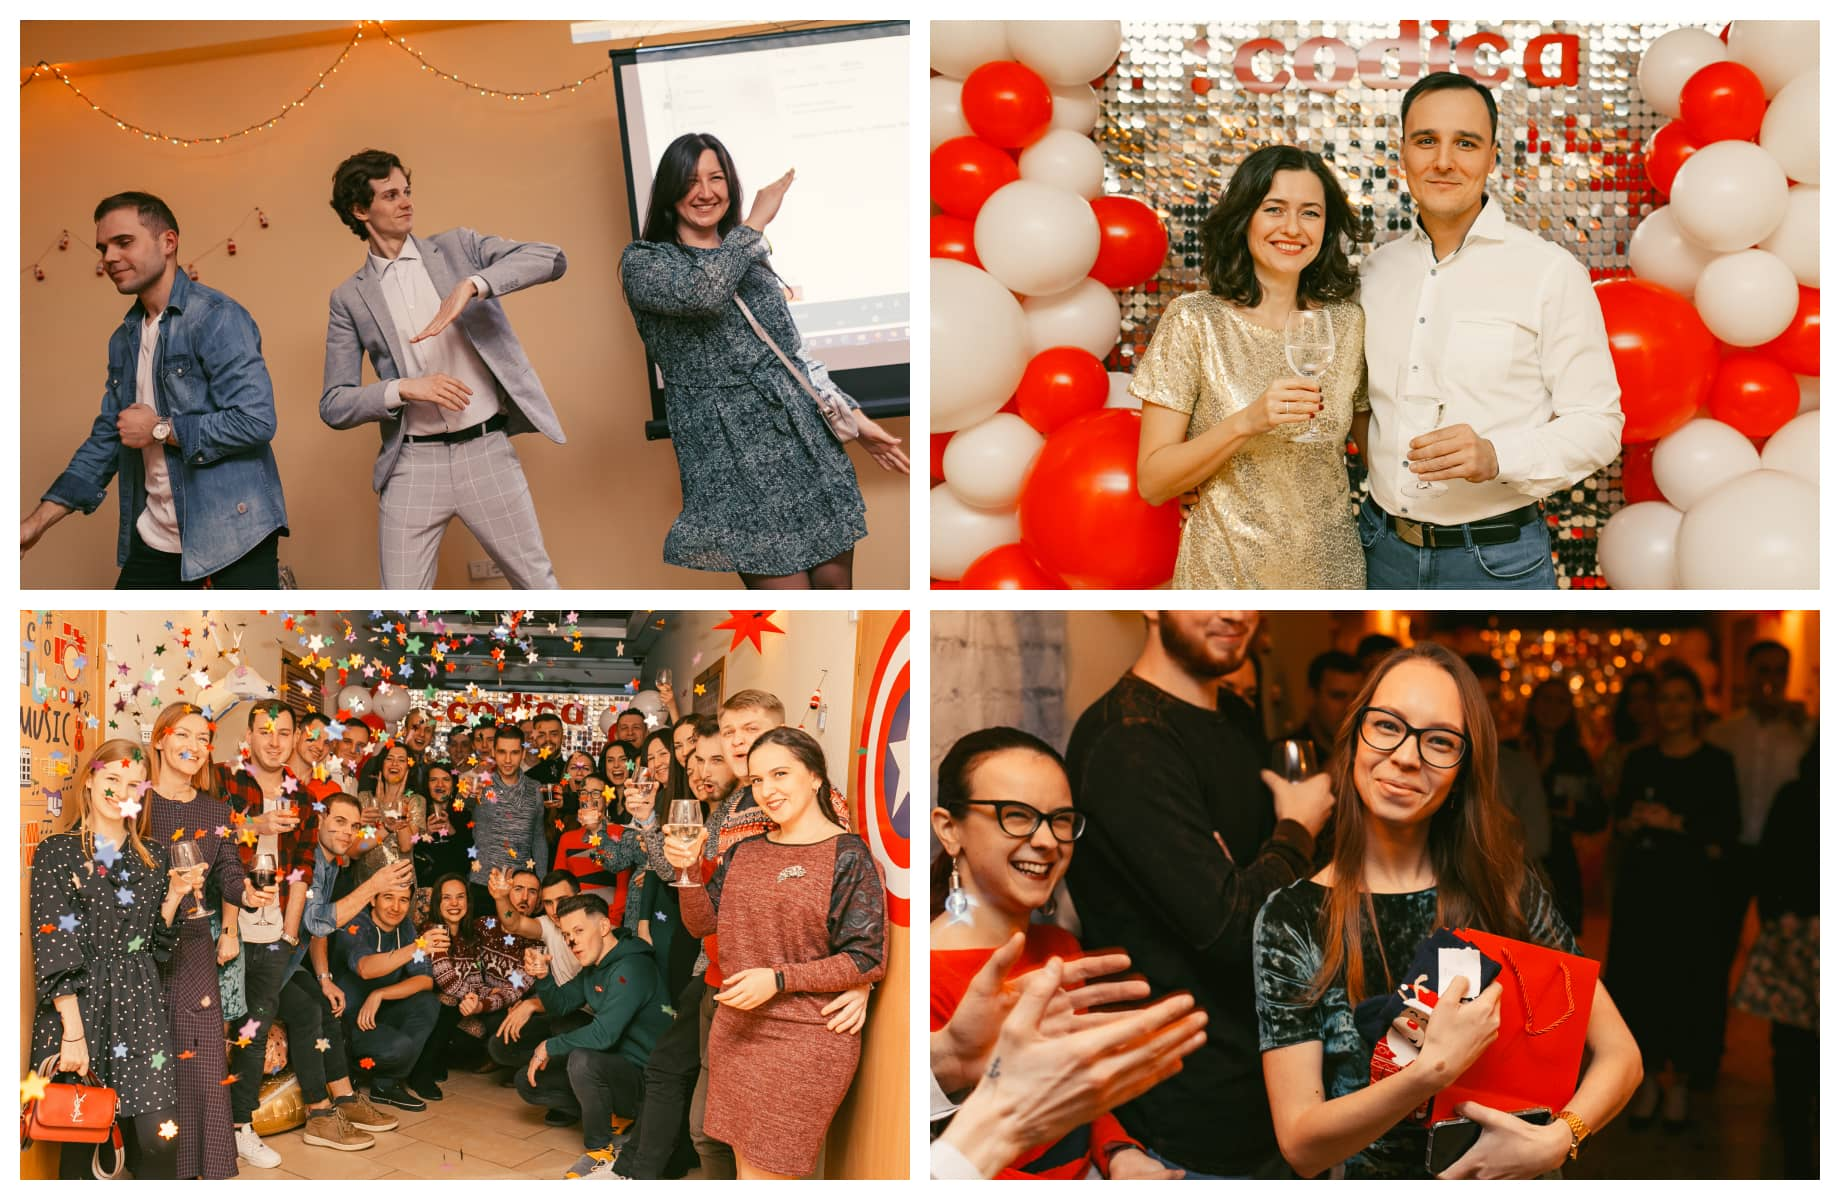 Codica software development team holds a New Year's party